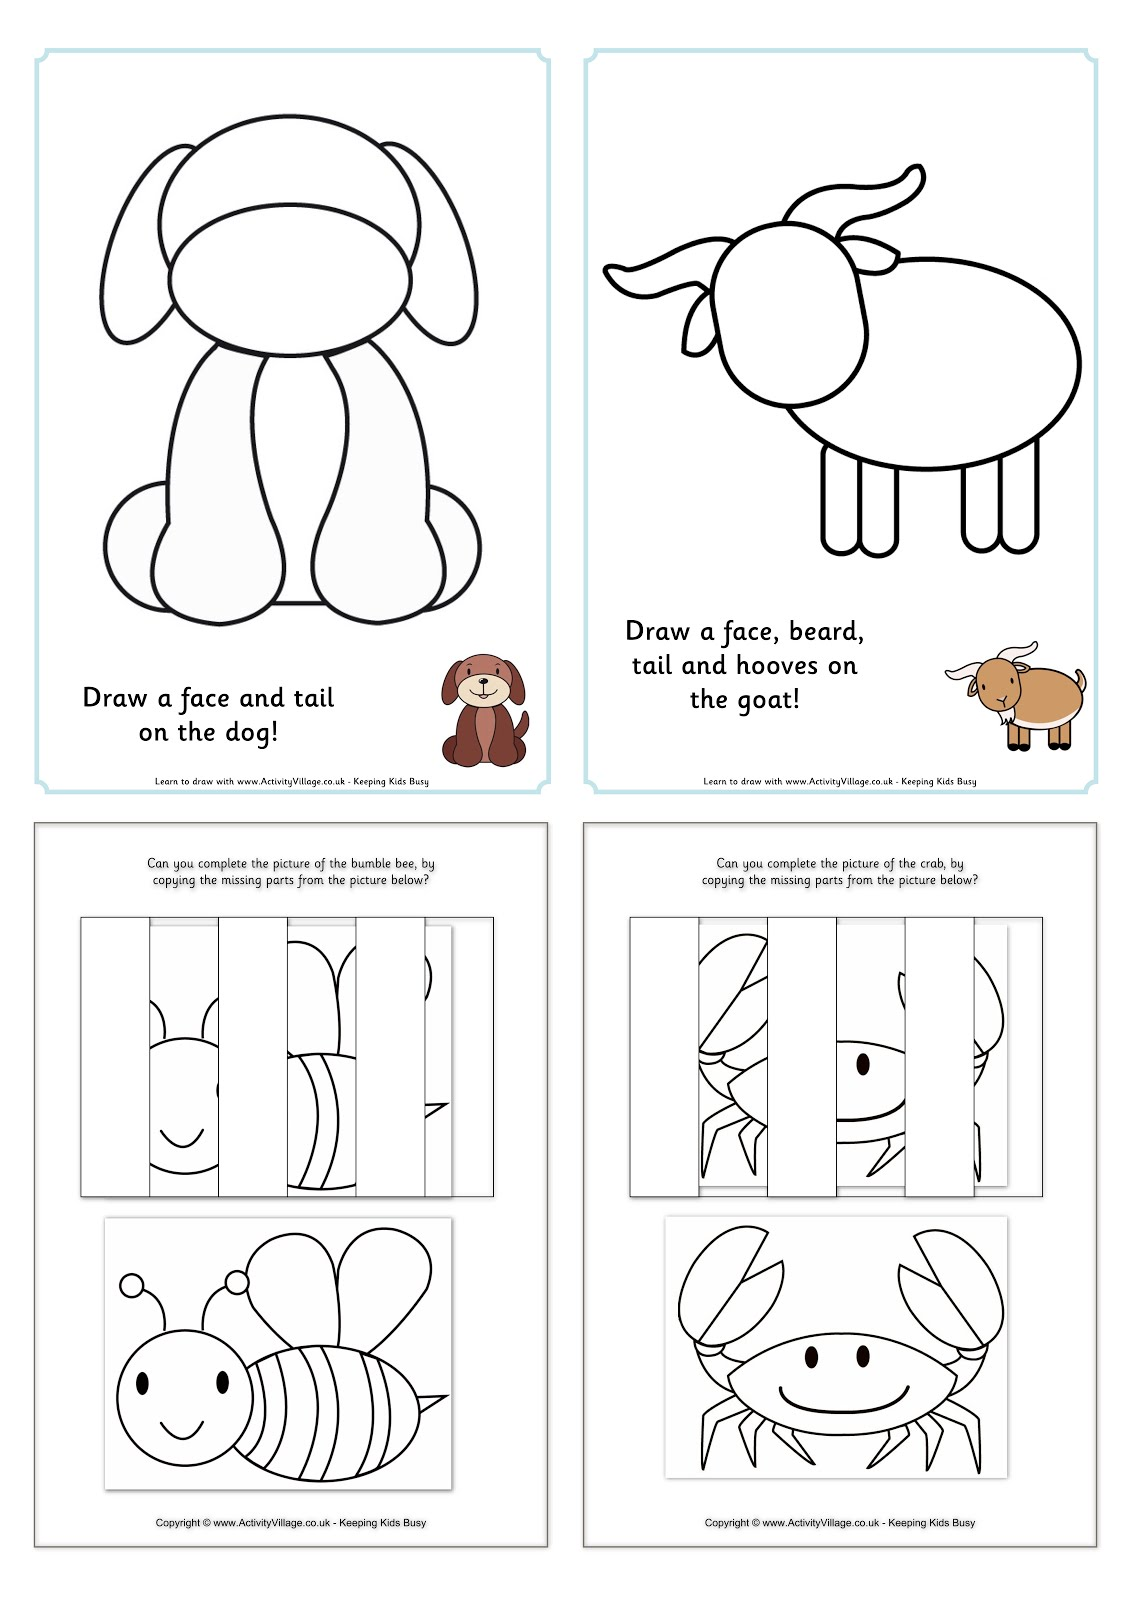 Lovely FREE Visual Closure Worksheets designed by ActivityVillage.co.uk